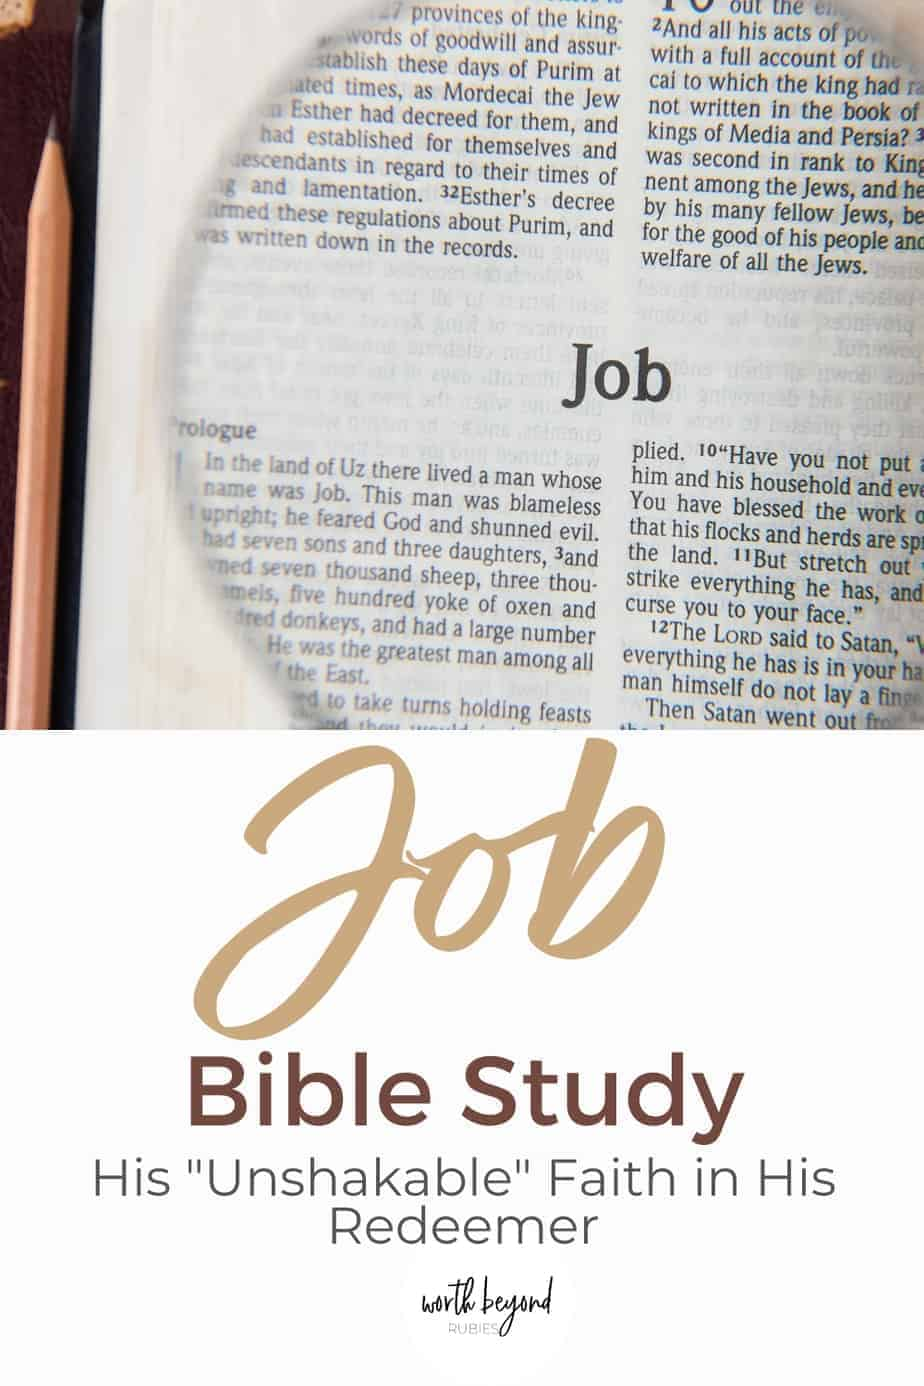 """The Book of Job under a magnifying glass and text that says Job Bible Study - His """"Unshakable"""" Faith in His Redeemer"""